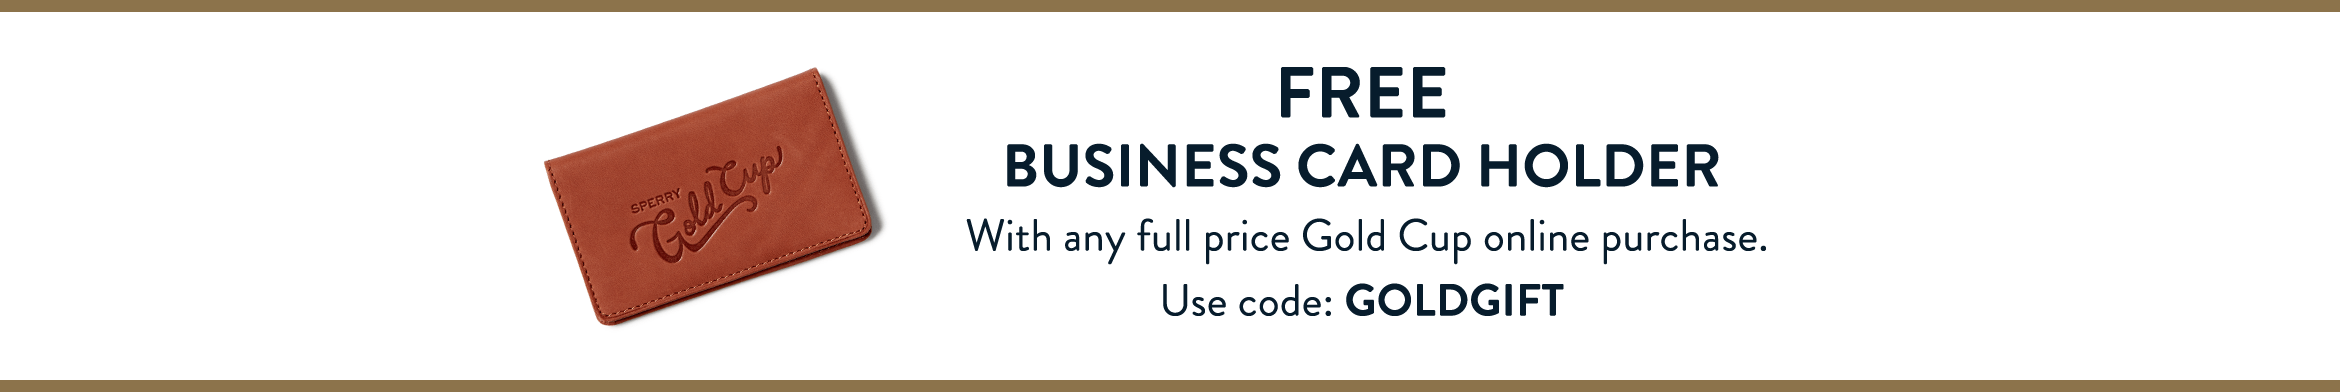 Free Business Card Holder with any full price Gold Cup online purchase. Use Code GOLDGIFT.